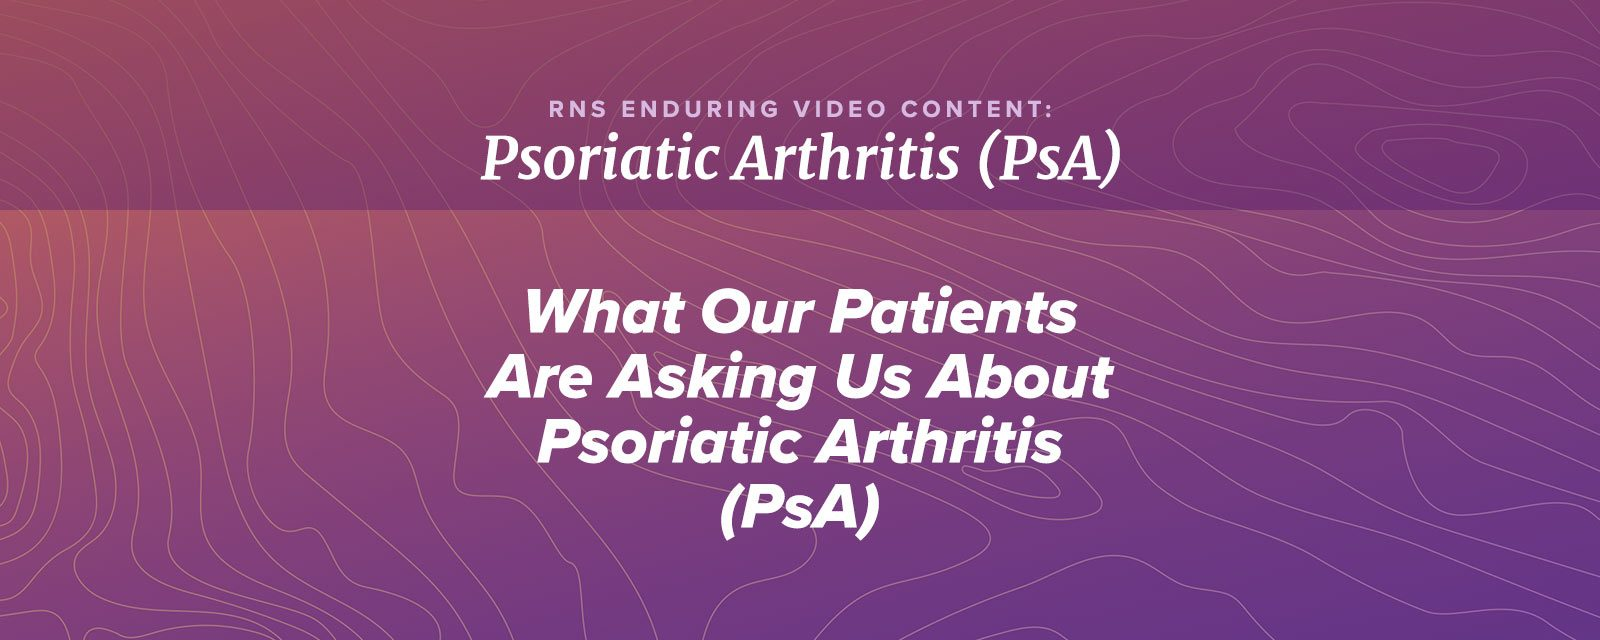 What Our Patients Are Asking Us About Psoriatic Arthritis